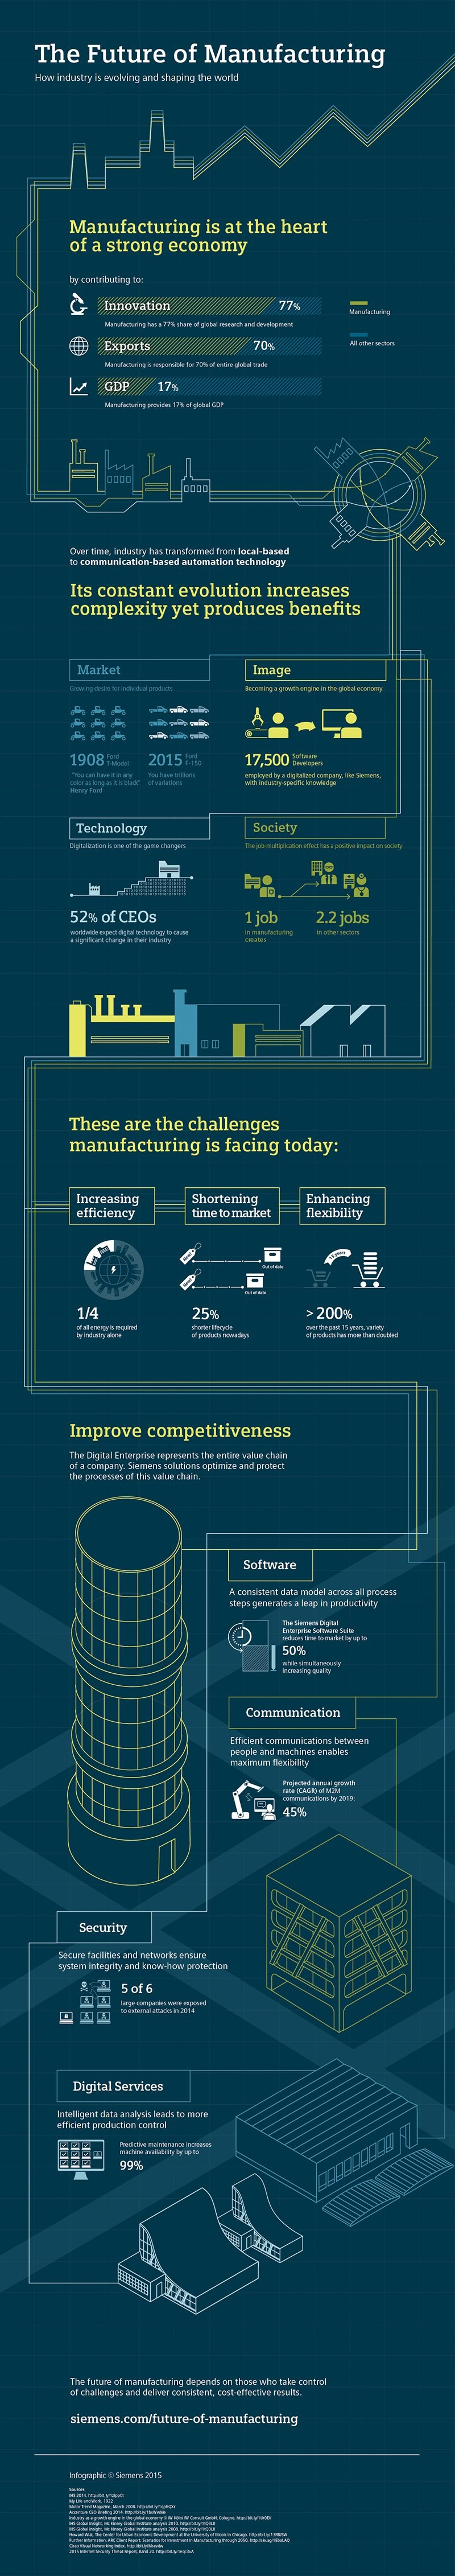 Global Manufacturing: Looking Ahead - Infographic